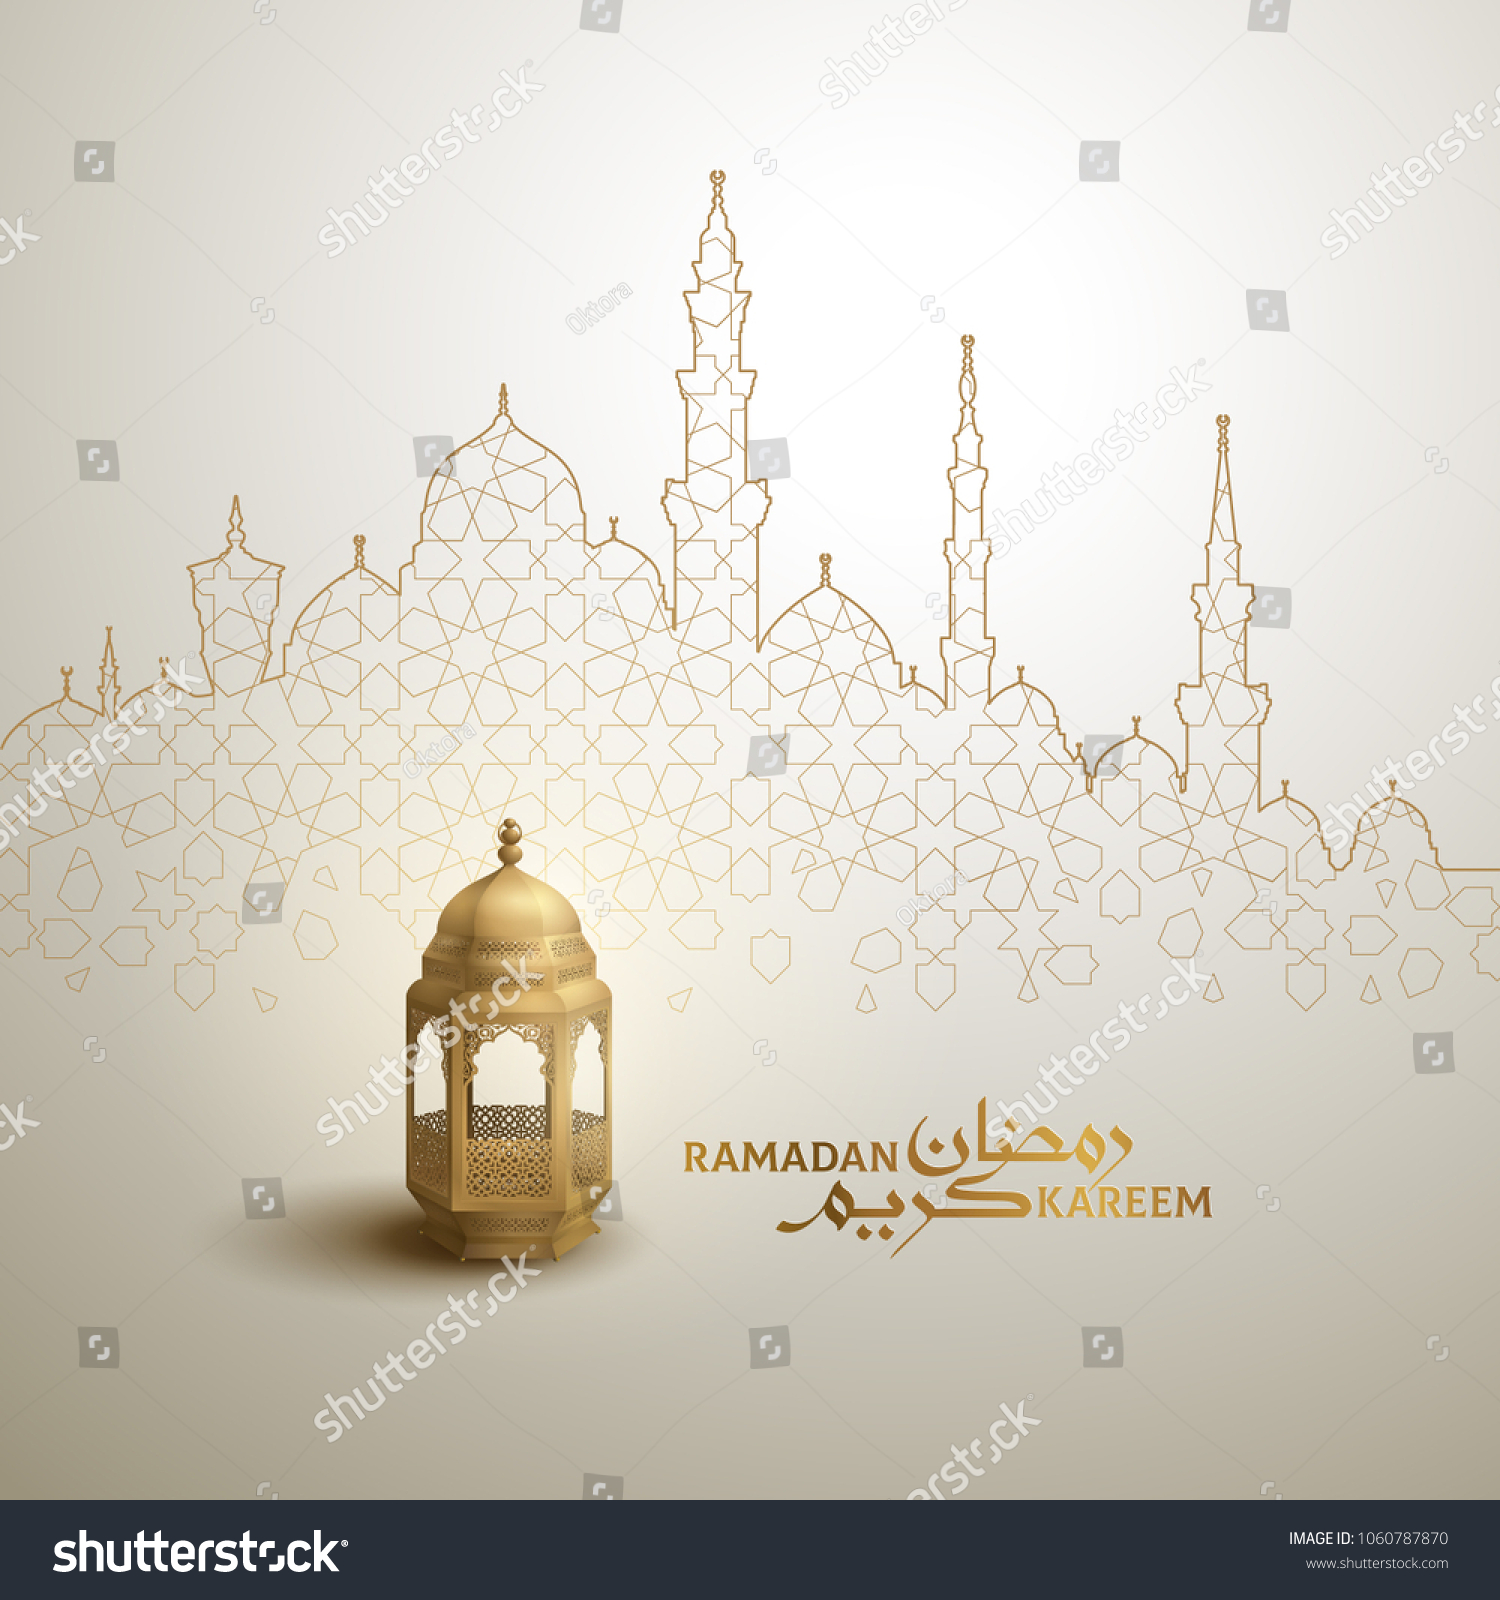 Ramadan Kareem arabic calligraphy greeting design islamic line mosque dome with classic pattern and lantern #1060787870